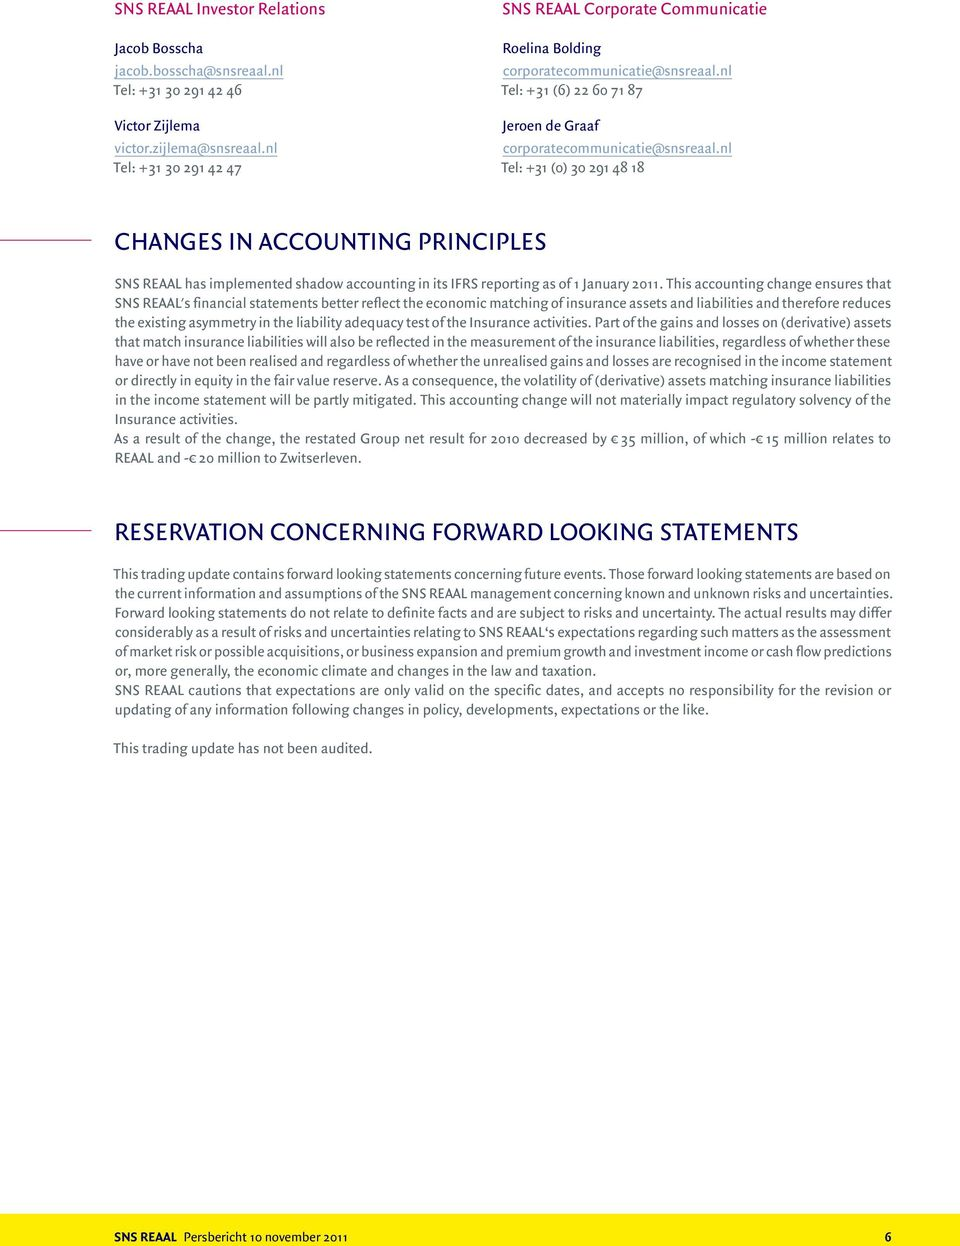 nl Tel: +31 (0) 30 291 48 18 Changes in accounting principles SNS REAAL has implemented shadow accounting in its IFRS reporting as of 1 January 2011.